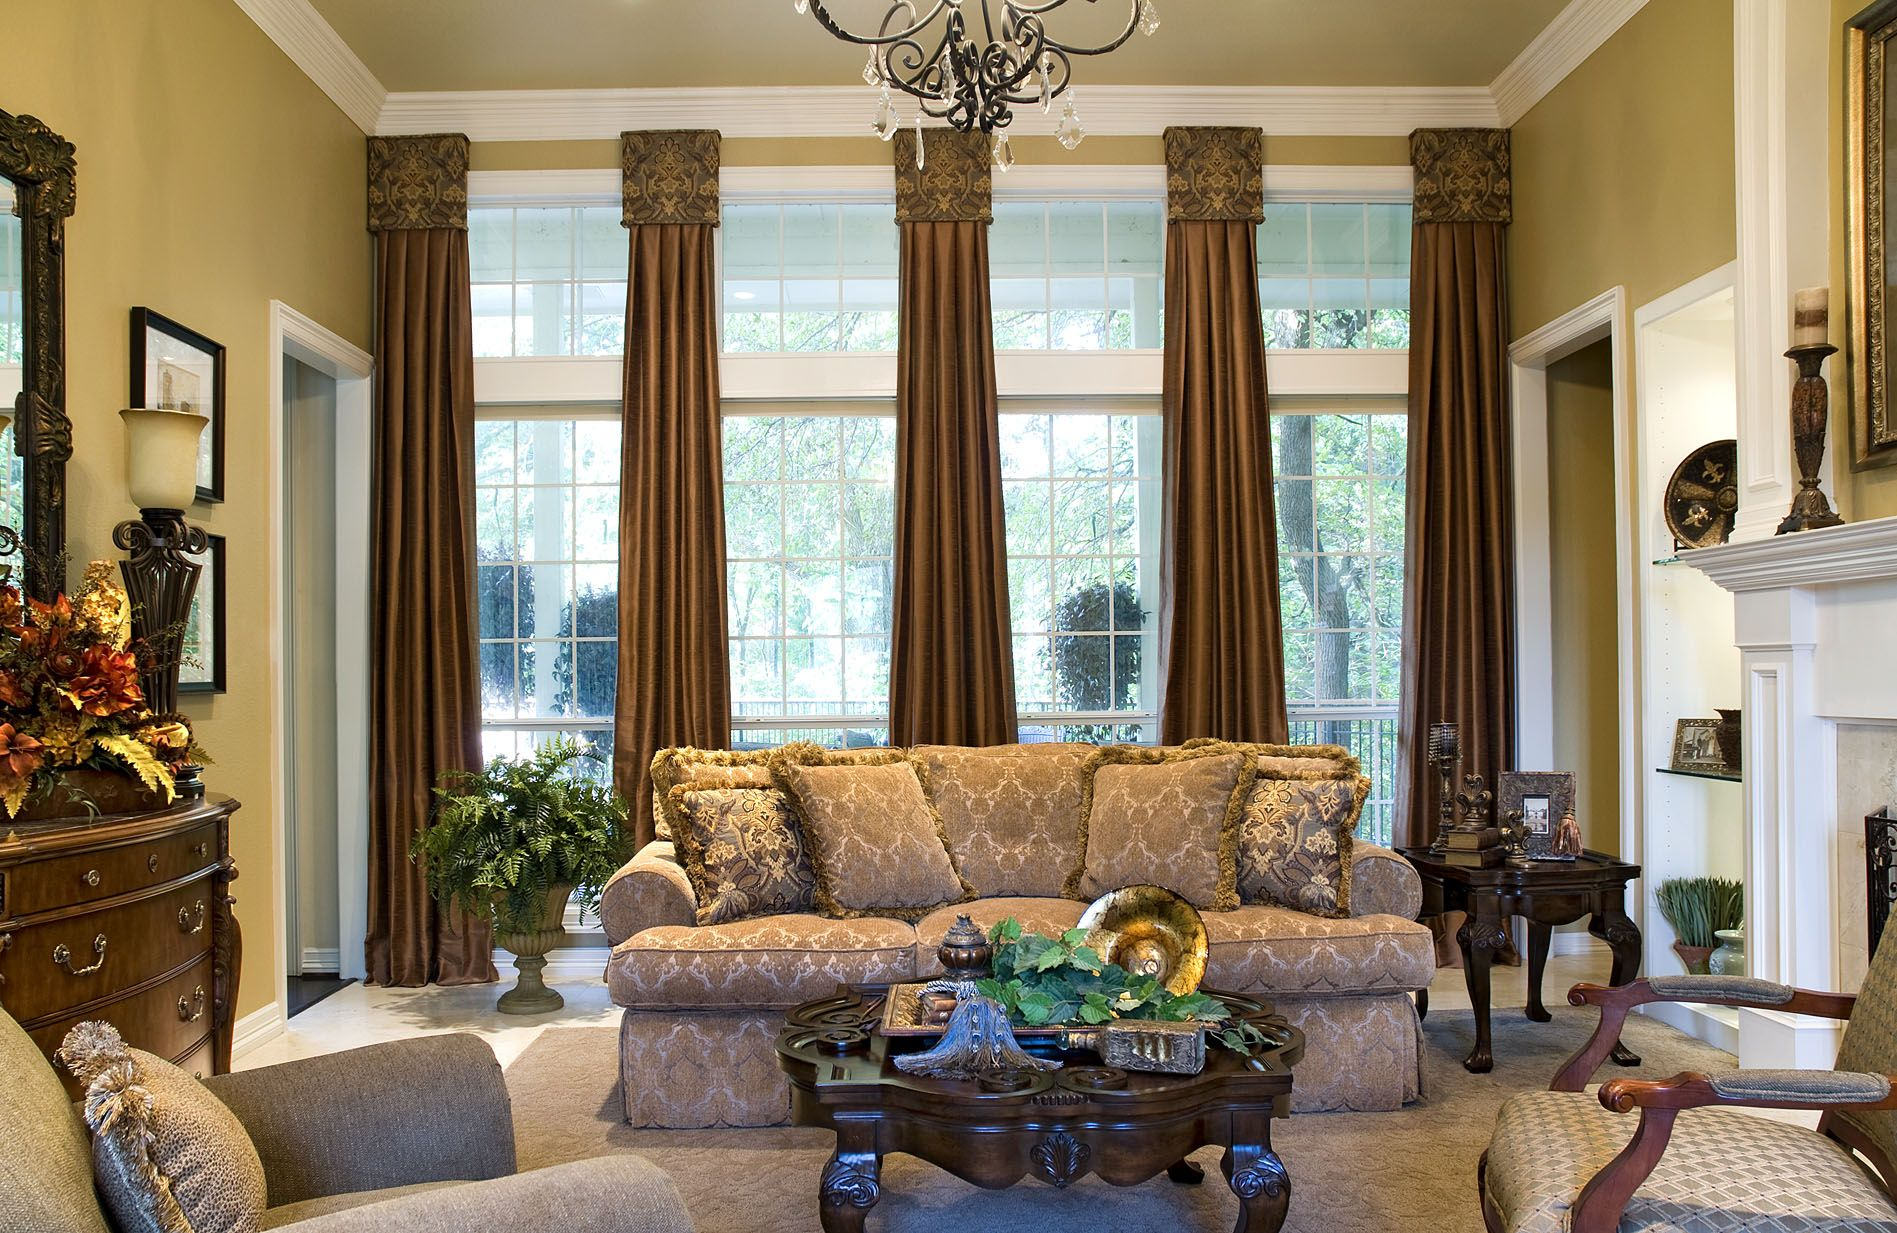 17 best images about window treatment ideas on pinterest window treatments window seats and bay window treatments - Window Treatment Design Ideas